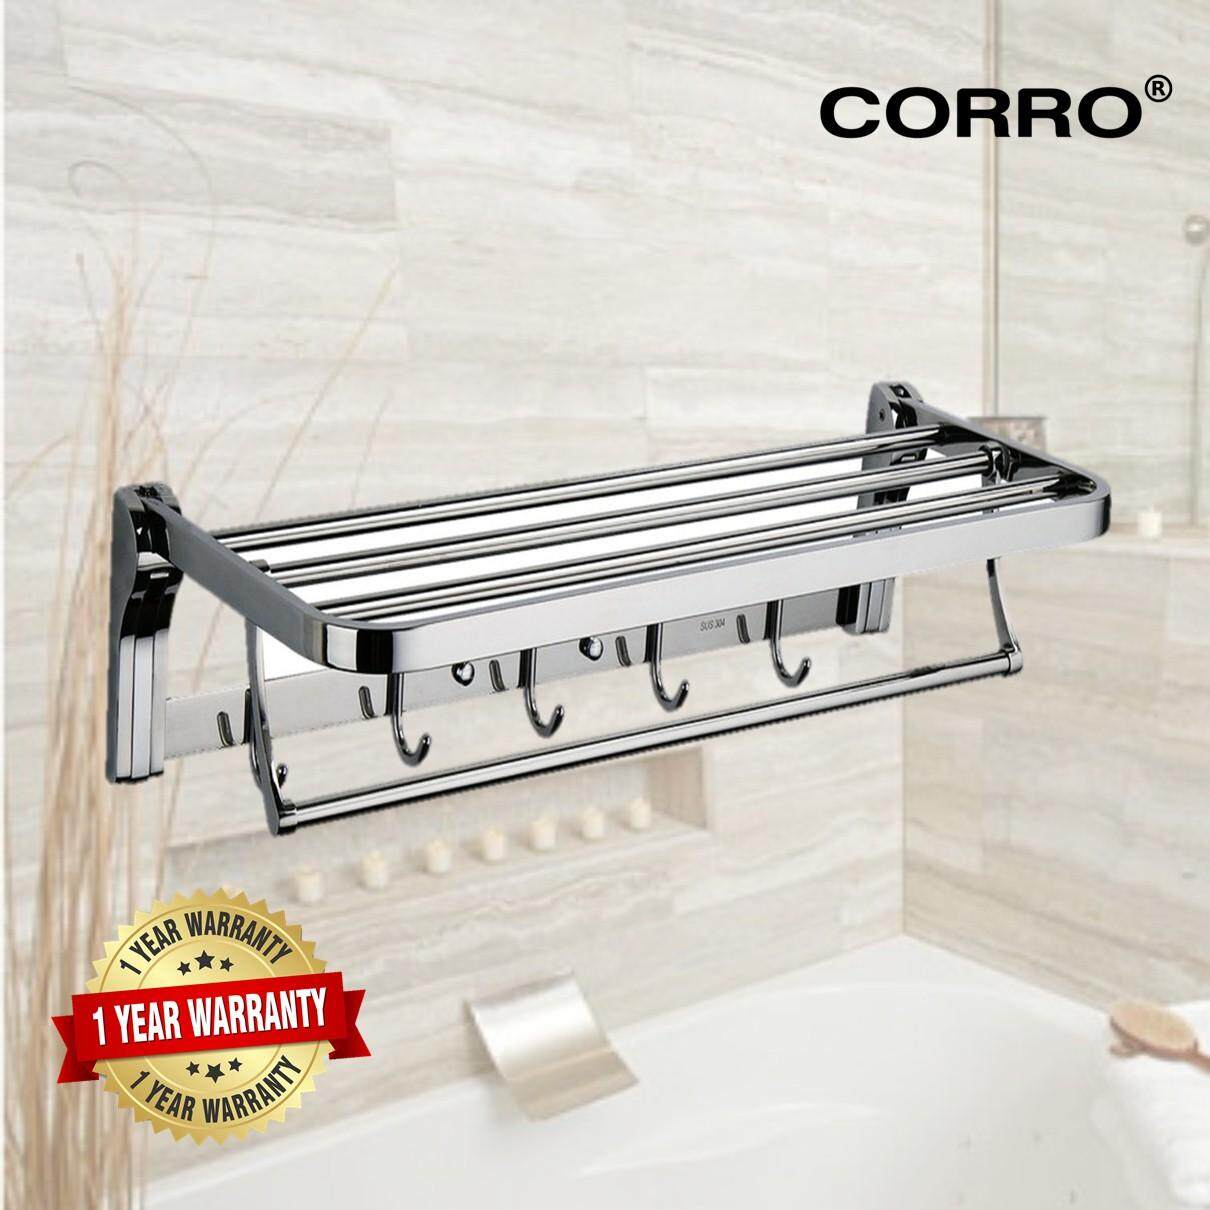 CORRO High Quality SUS304 Stainless Steel Foldable Towel Rack